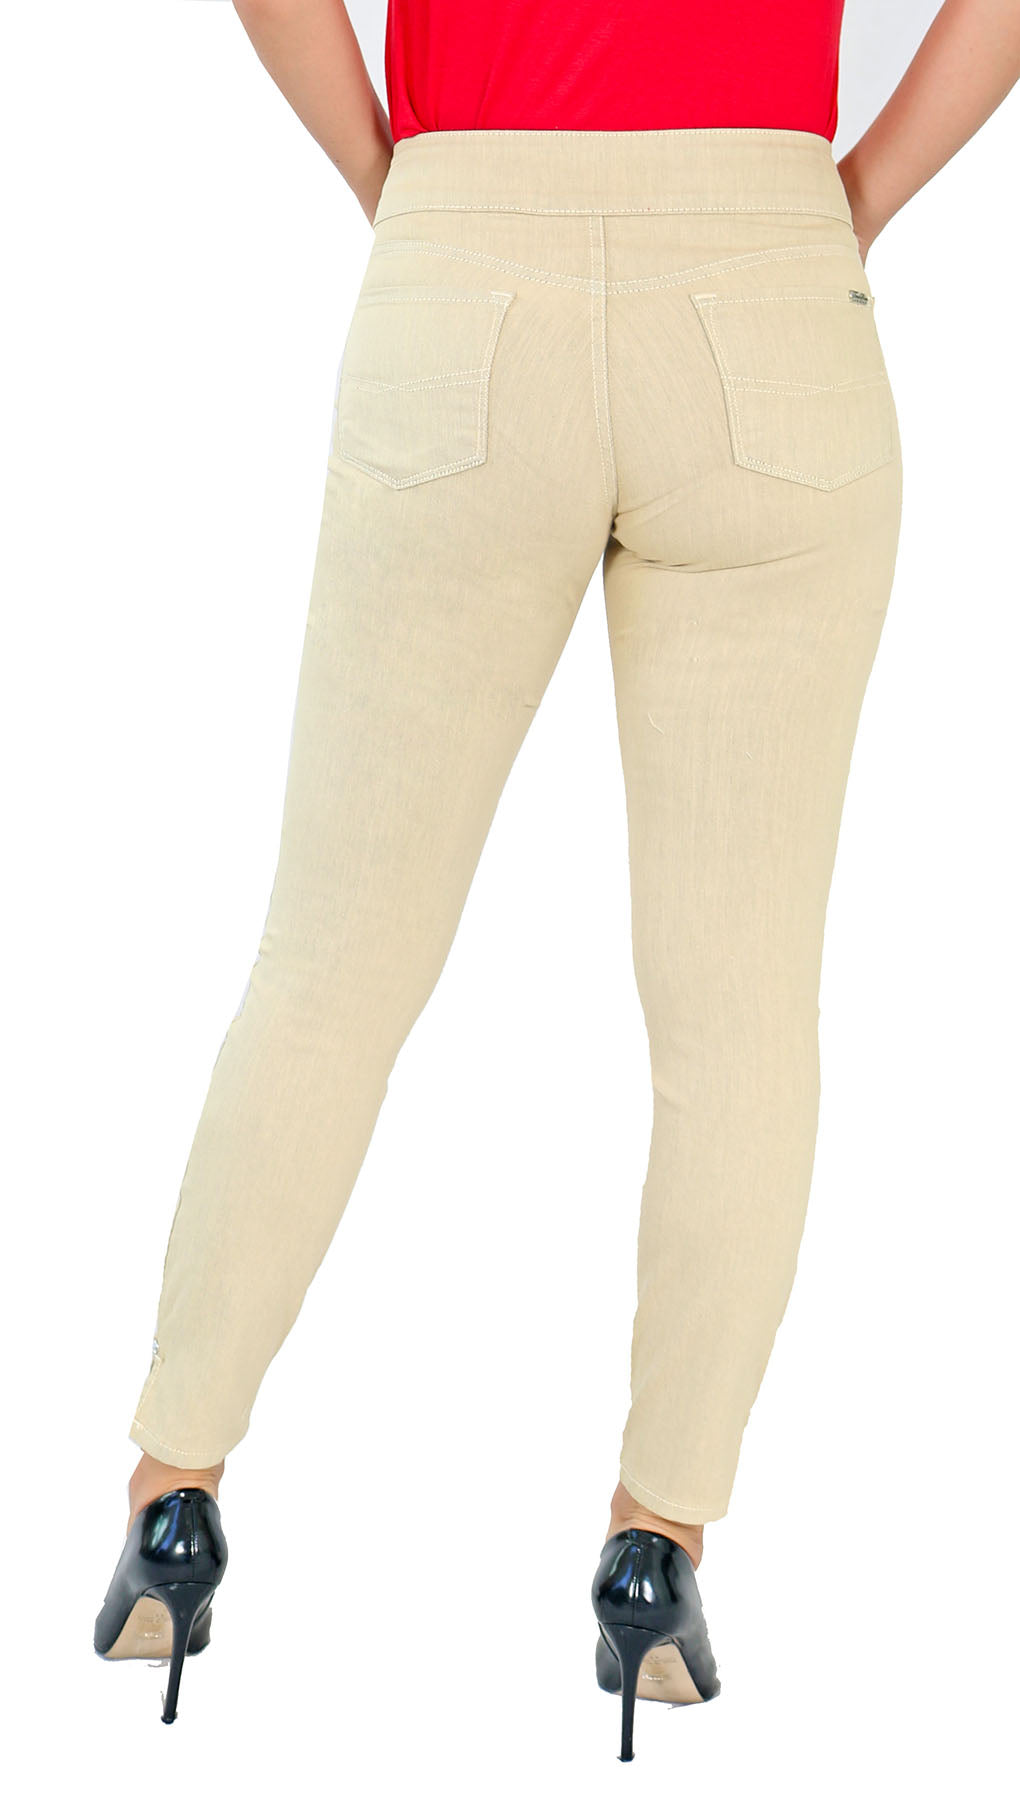 TrueSlim™ Wheat Two Button Jeggings